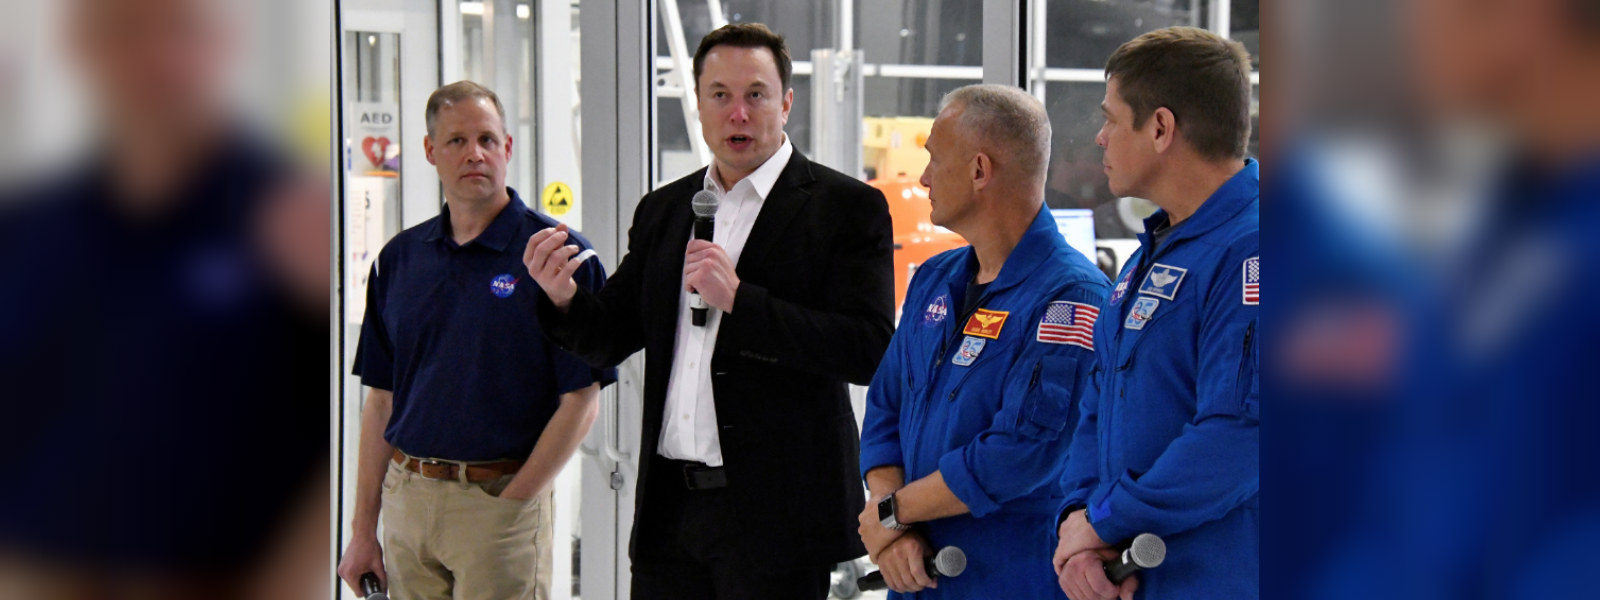 Manned SpaceX mission will happen in first quarter of 2020: NASA chief